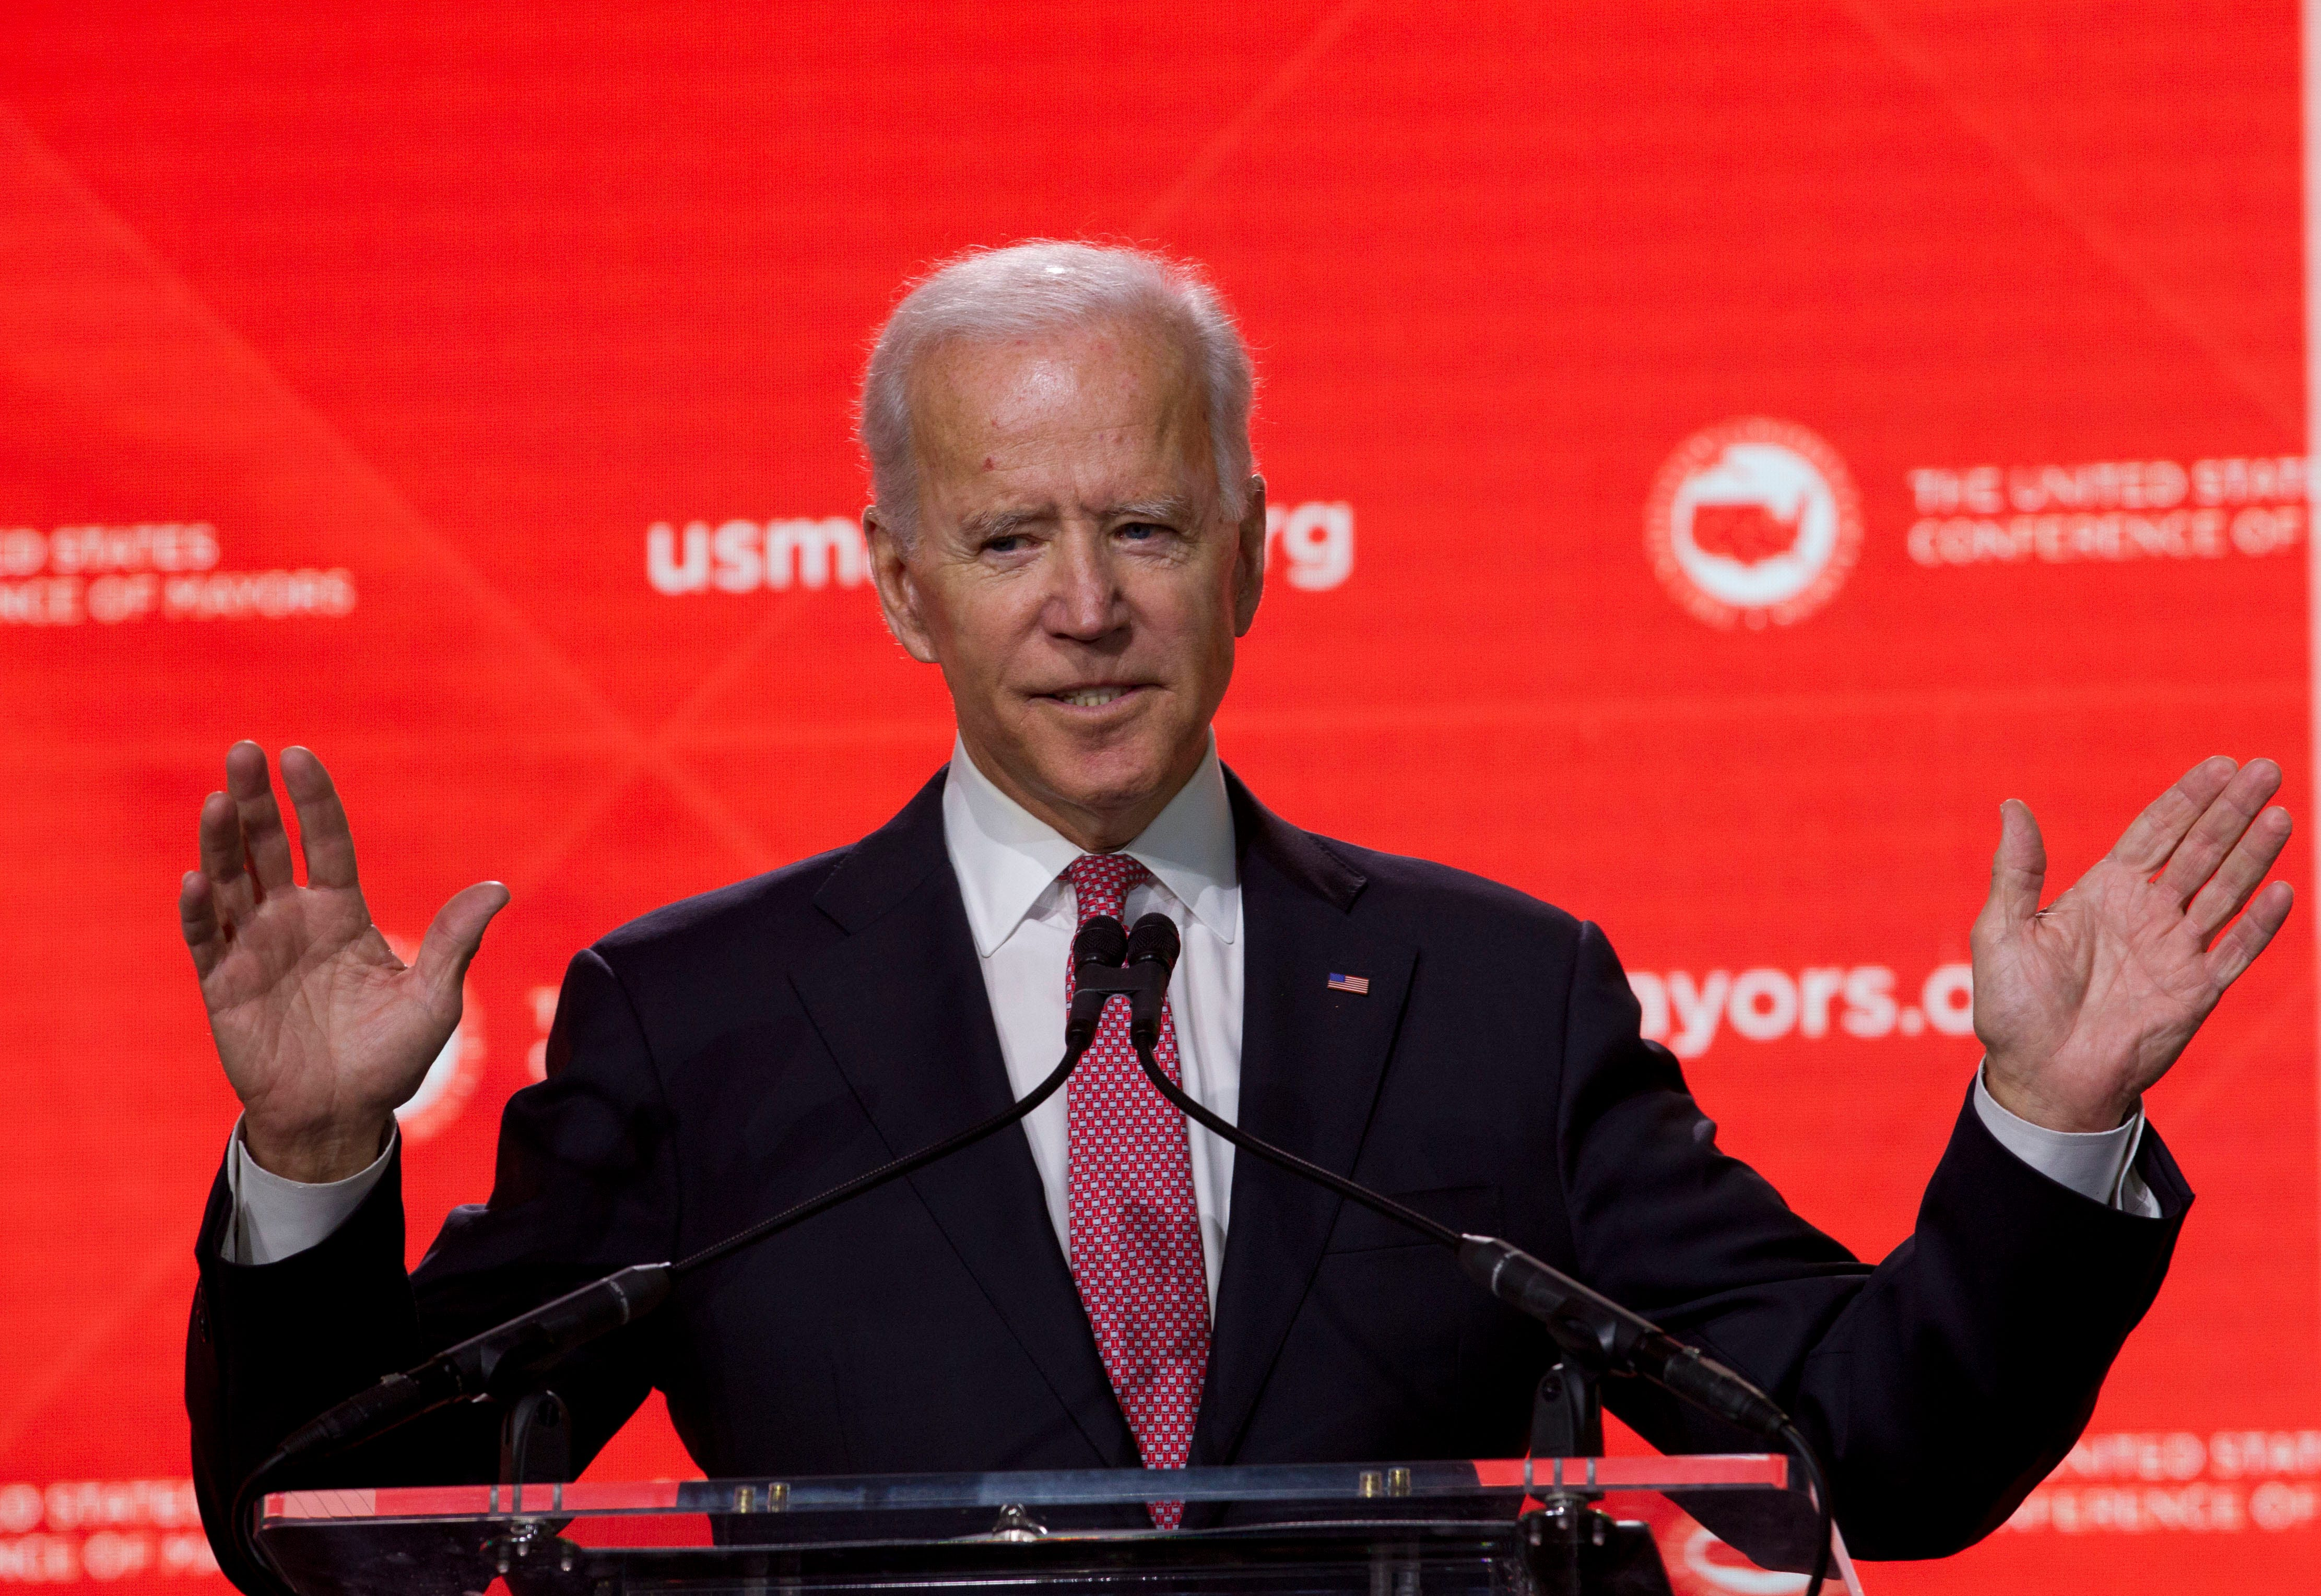 Biden's 2020 opening? Democratic field missing foreign policy emphasis | Delaware Online